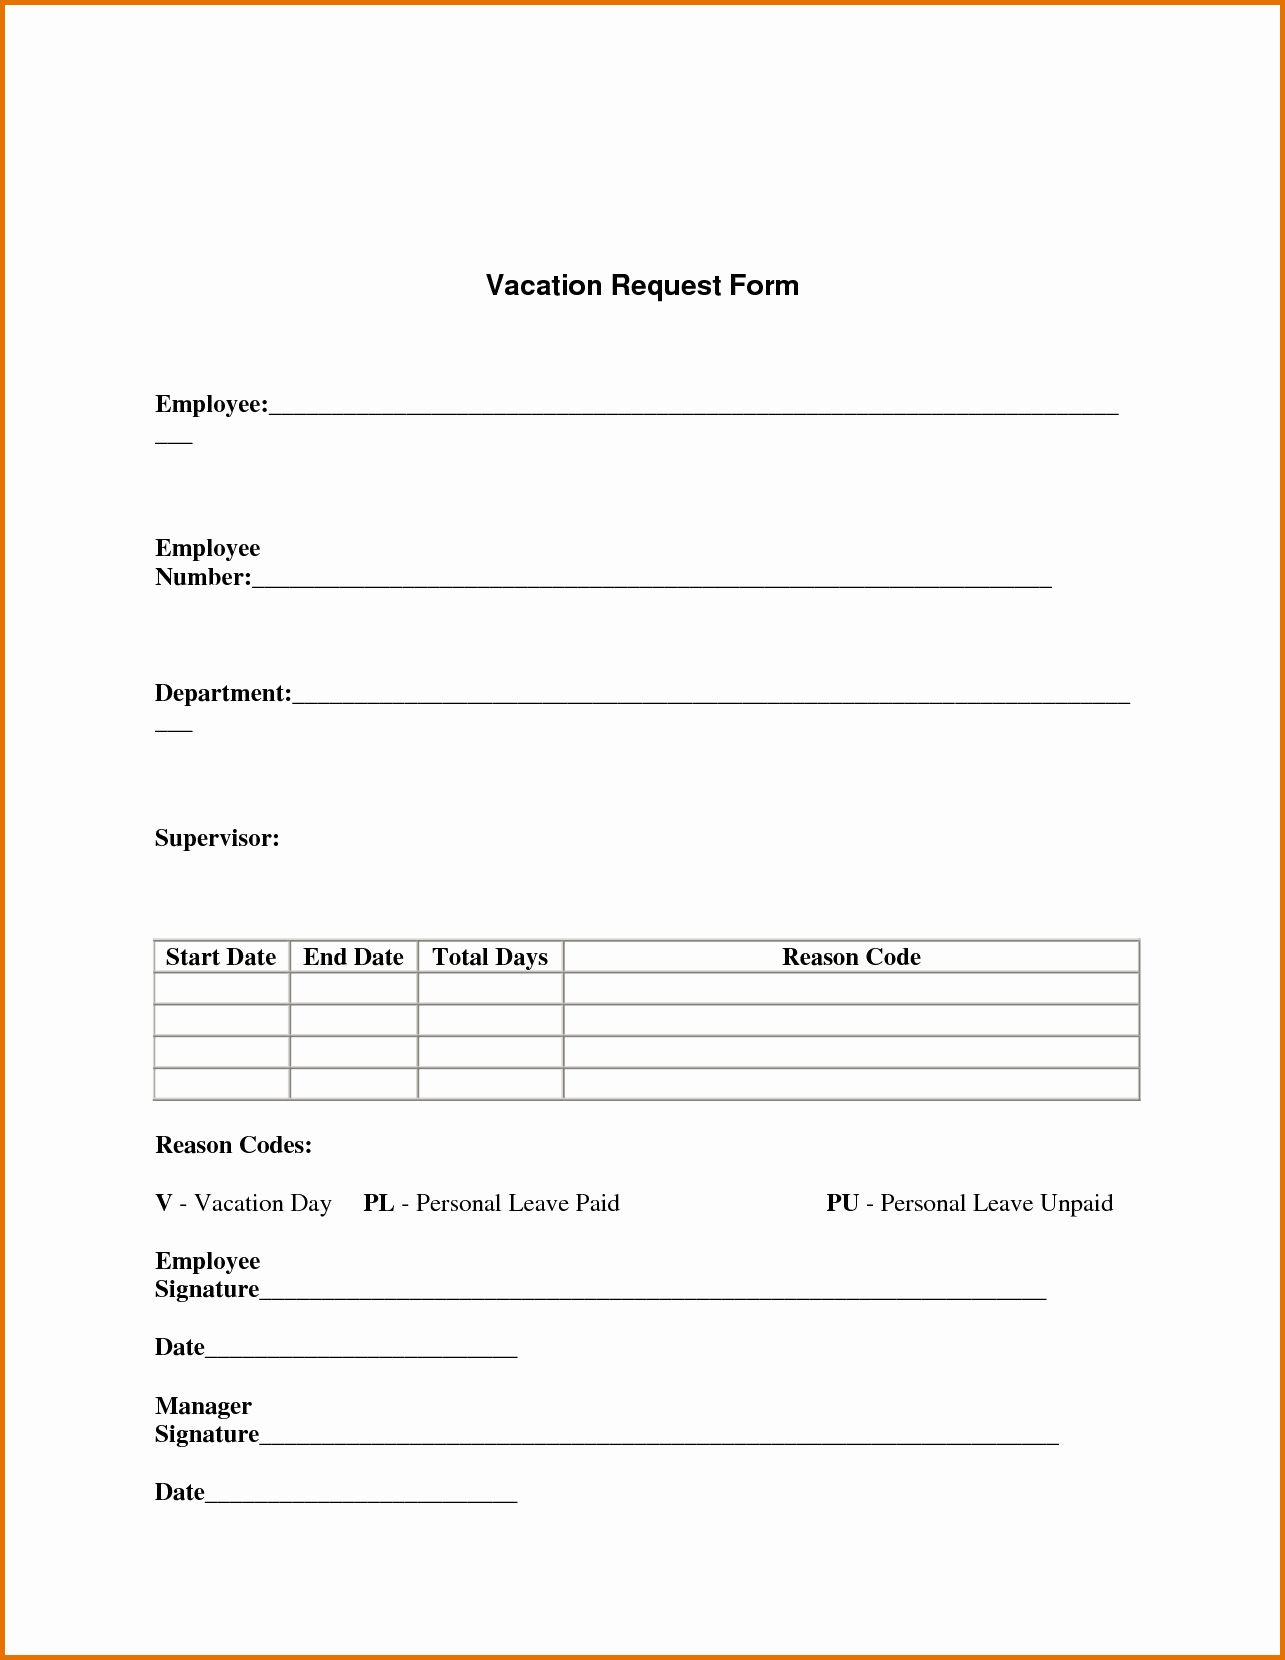 Leave Request Form Template Awesome Vacation Request Form Templatereference Letters Words Order Form Template Word Template Donation Request Form